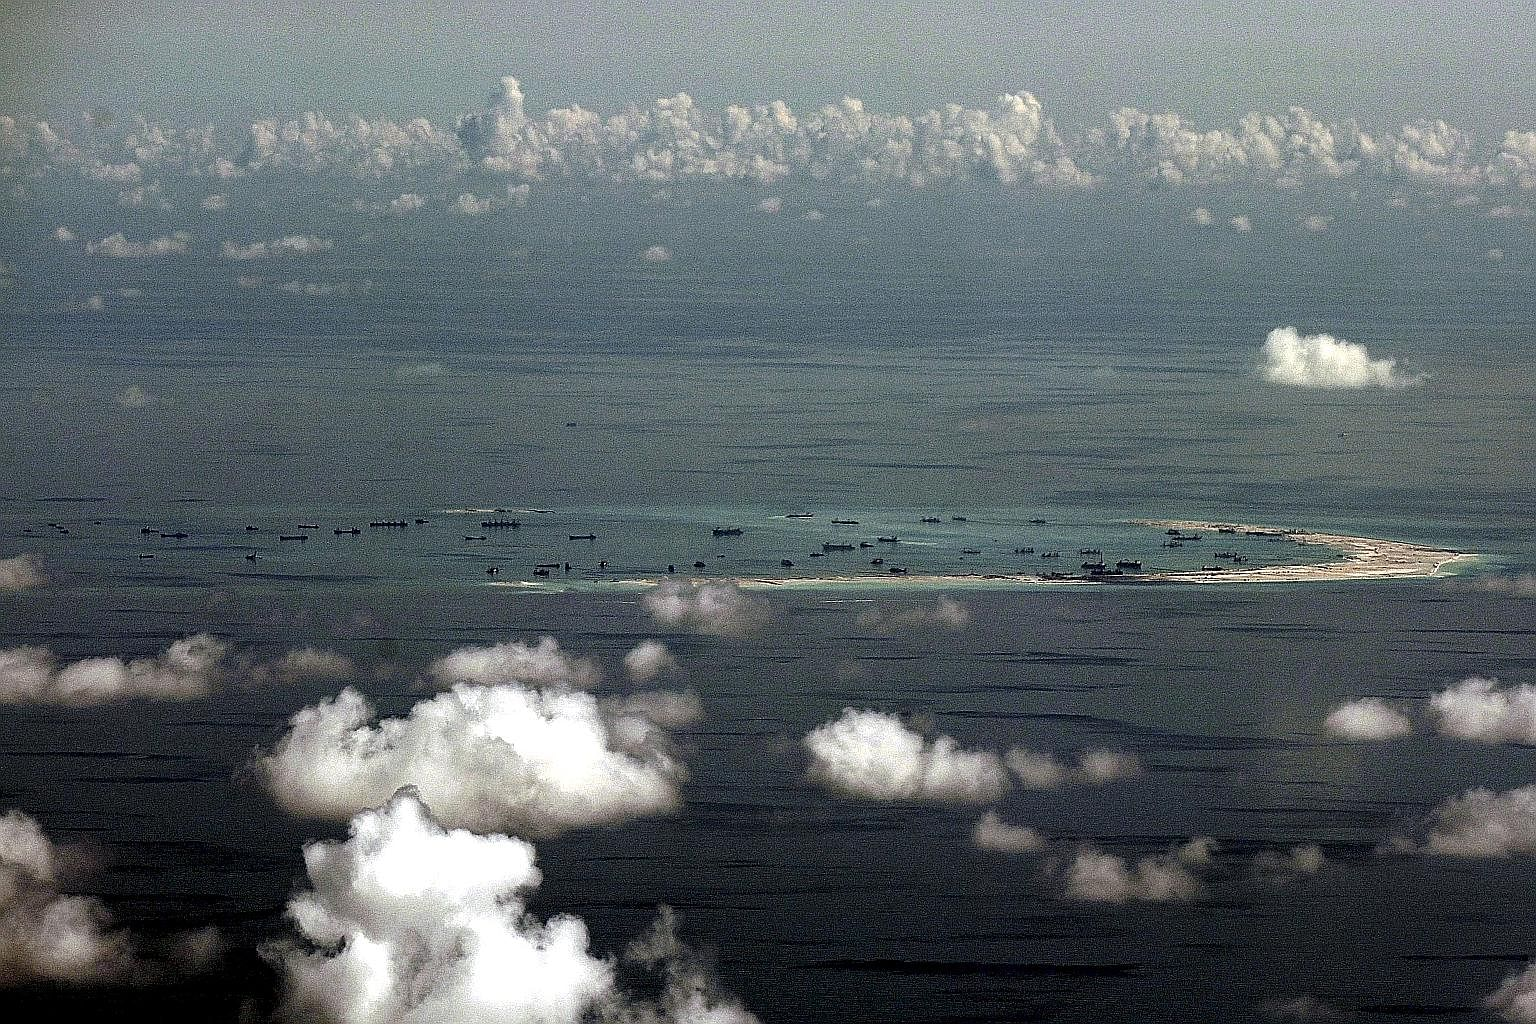 """An aerial photo showing China's alleged land reclamation on Mischief Reef in the South China Sea, west of Palawan in the Philippines. Several """"known unknowns"""" could affect the South China Sea situation in the foreseeable future."""